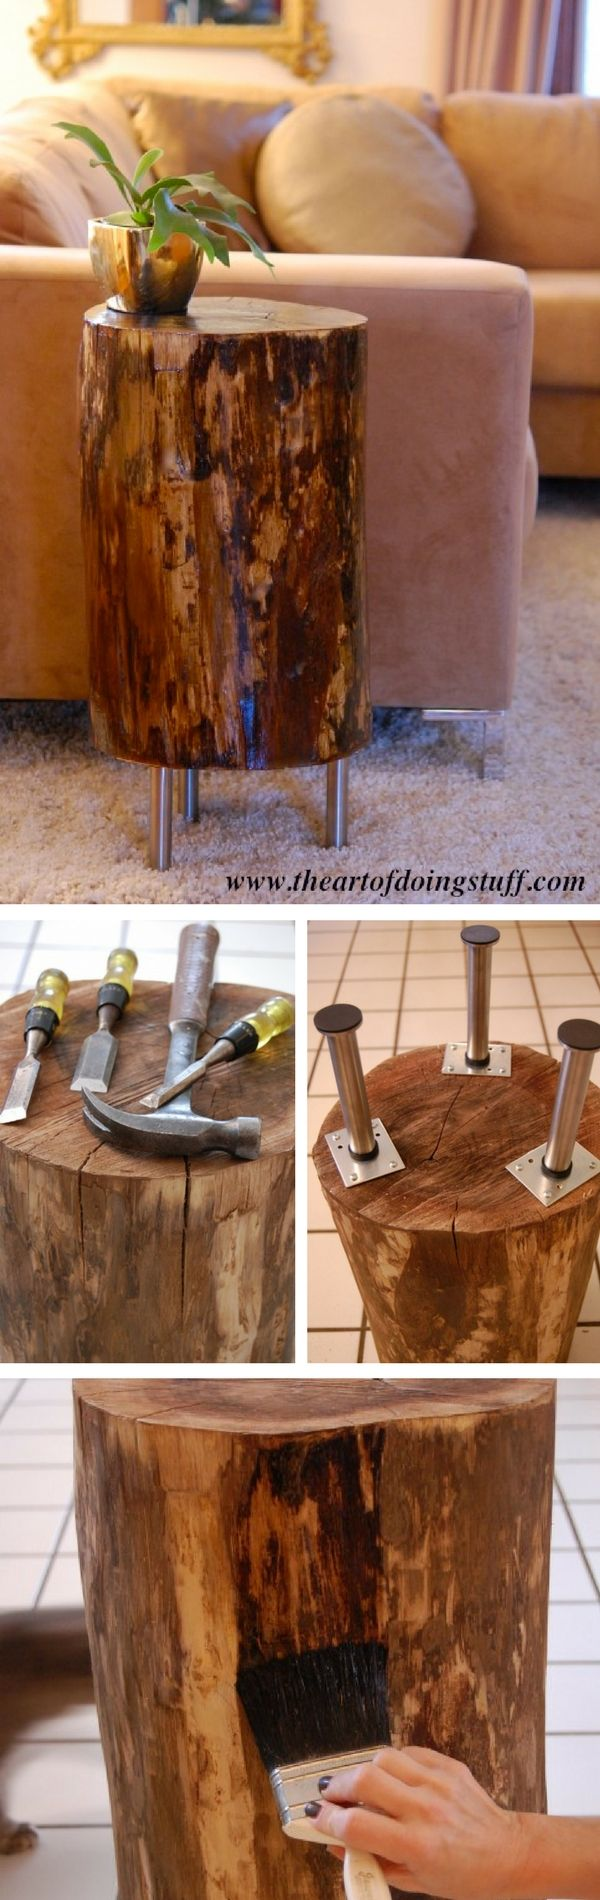 Check out how to make a DIY tree stump side table @istandarddesign